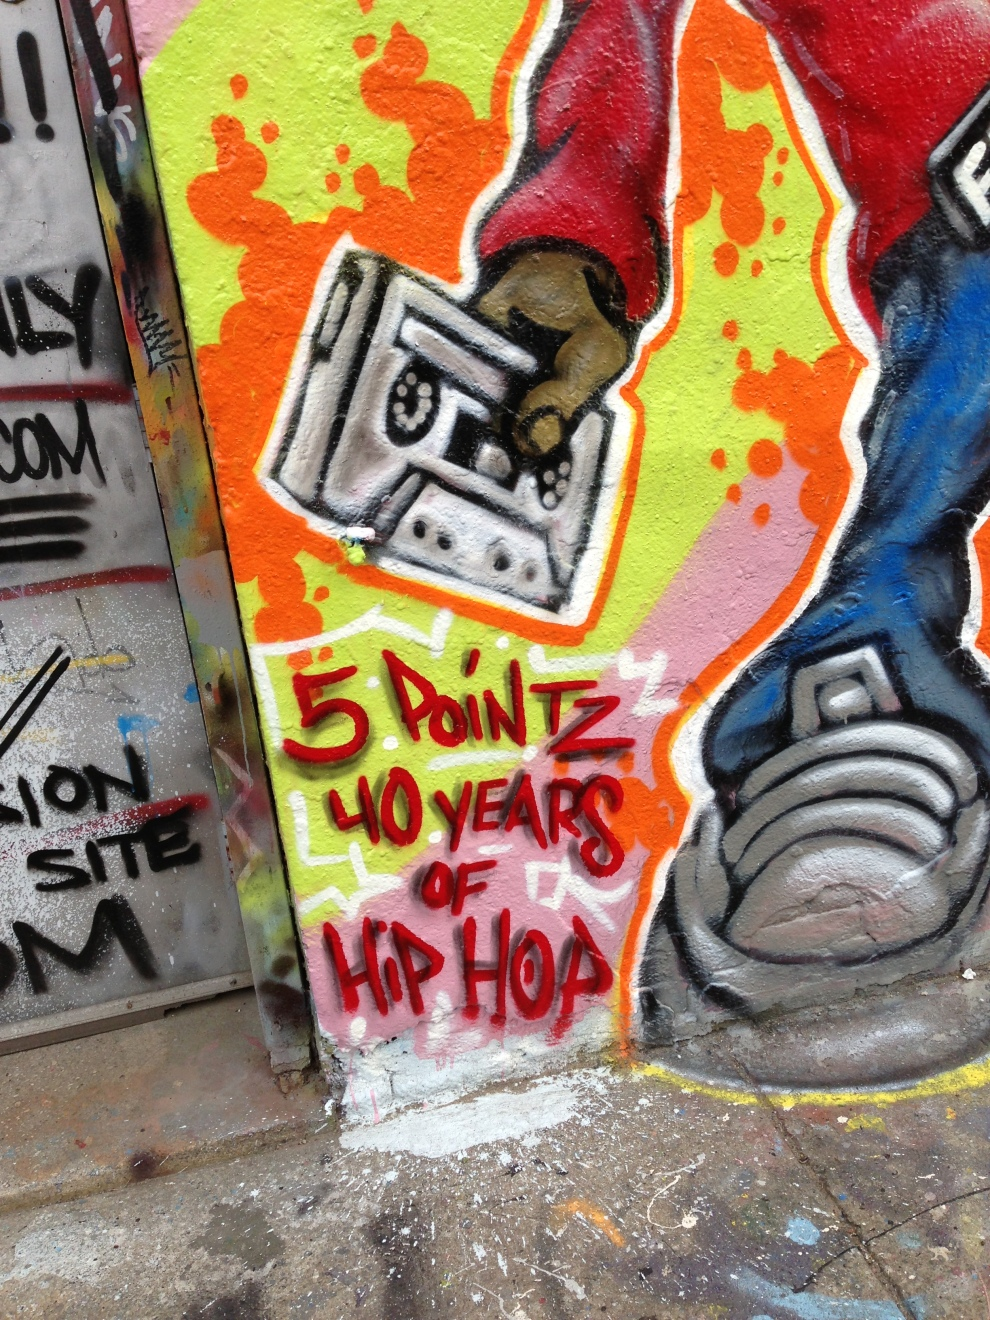 40 years of hip hop